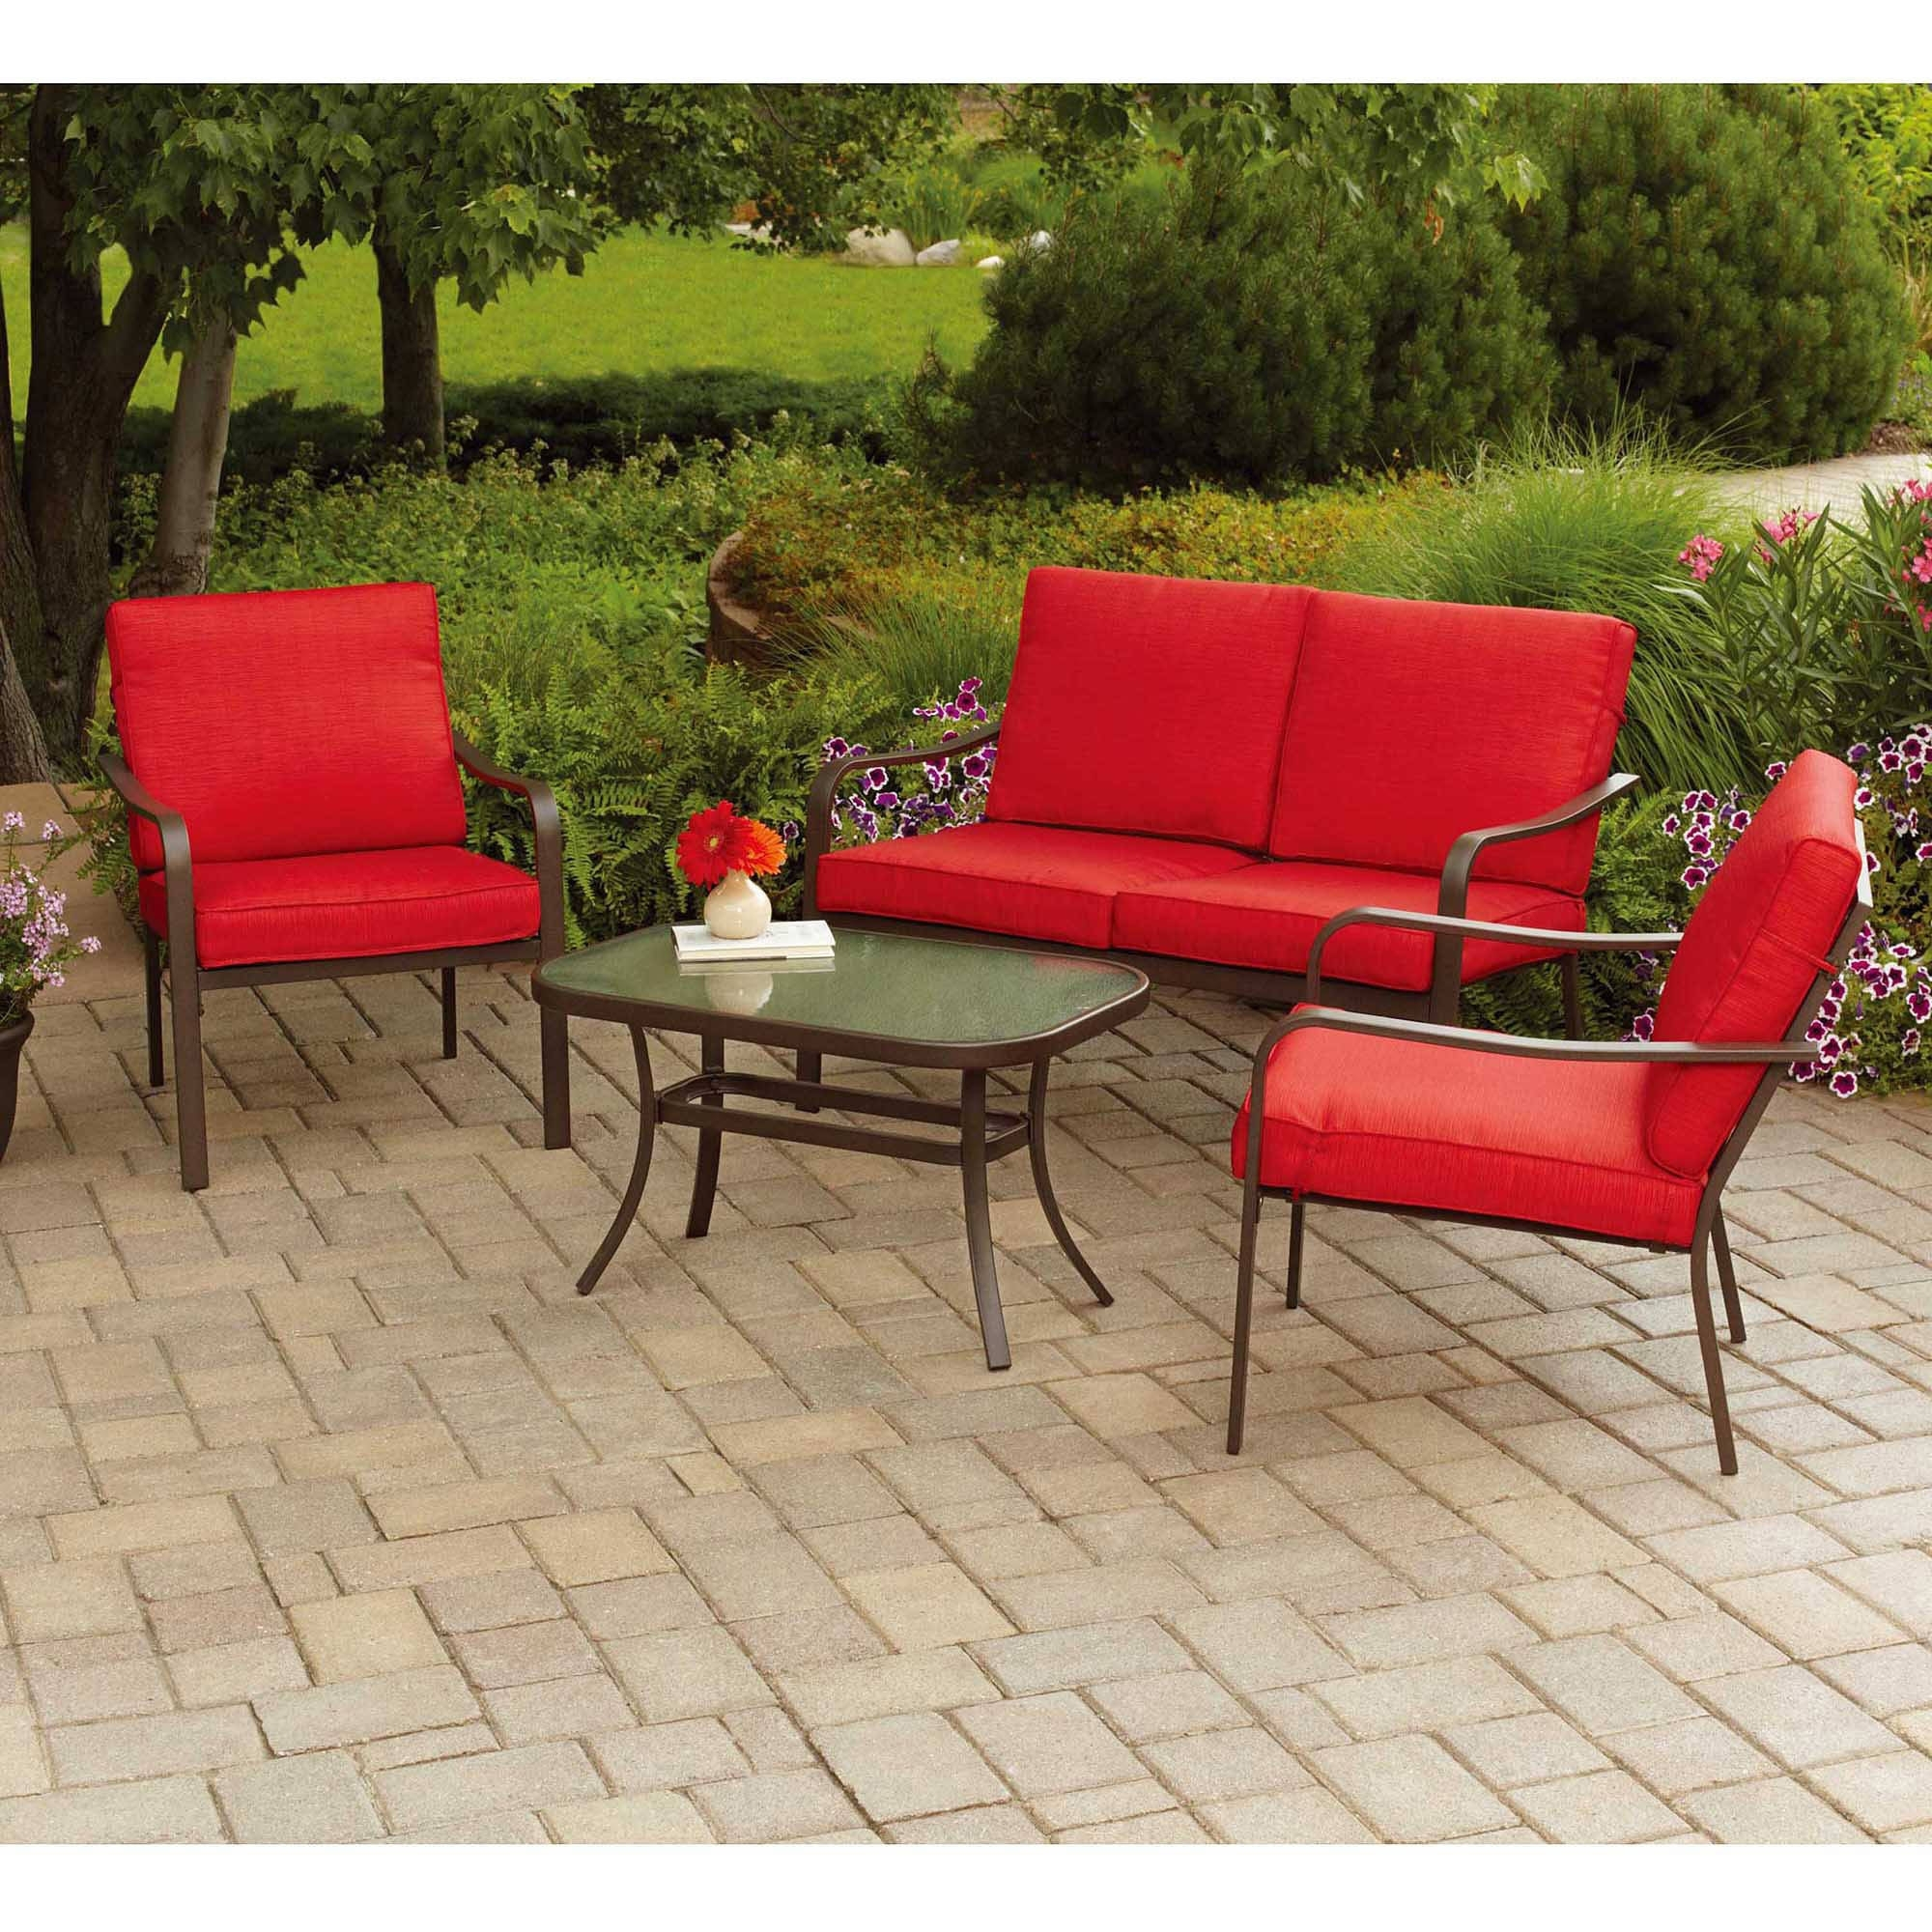 Preferred Mainstays Stanton Cushioned 4 Piece Patio Conversation Set, Seats 4 Regarding Patio Conversation Sets With Cushions (View 13 of 15)